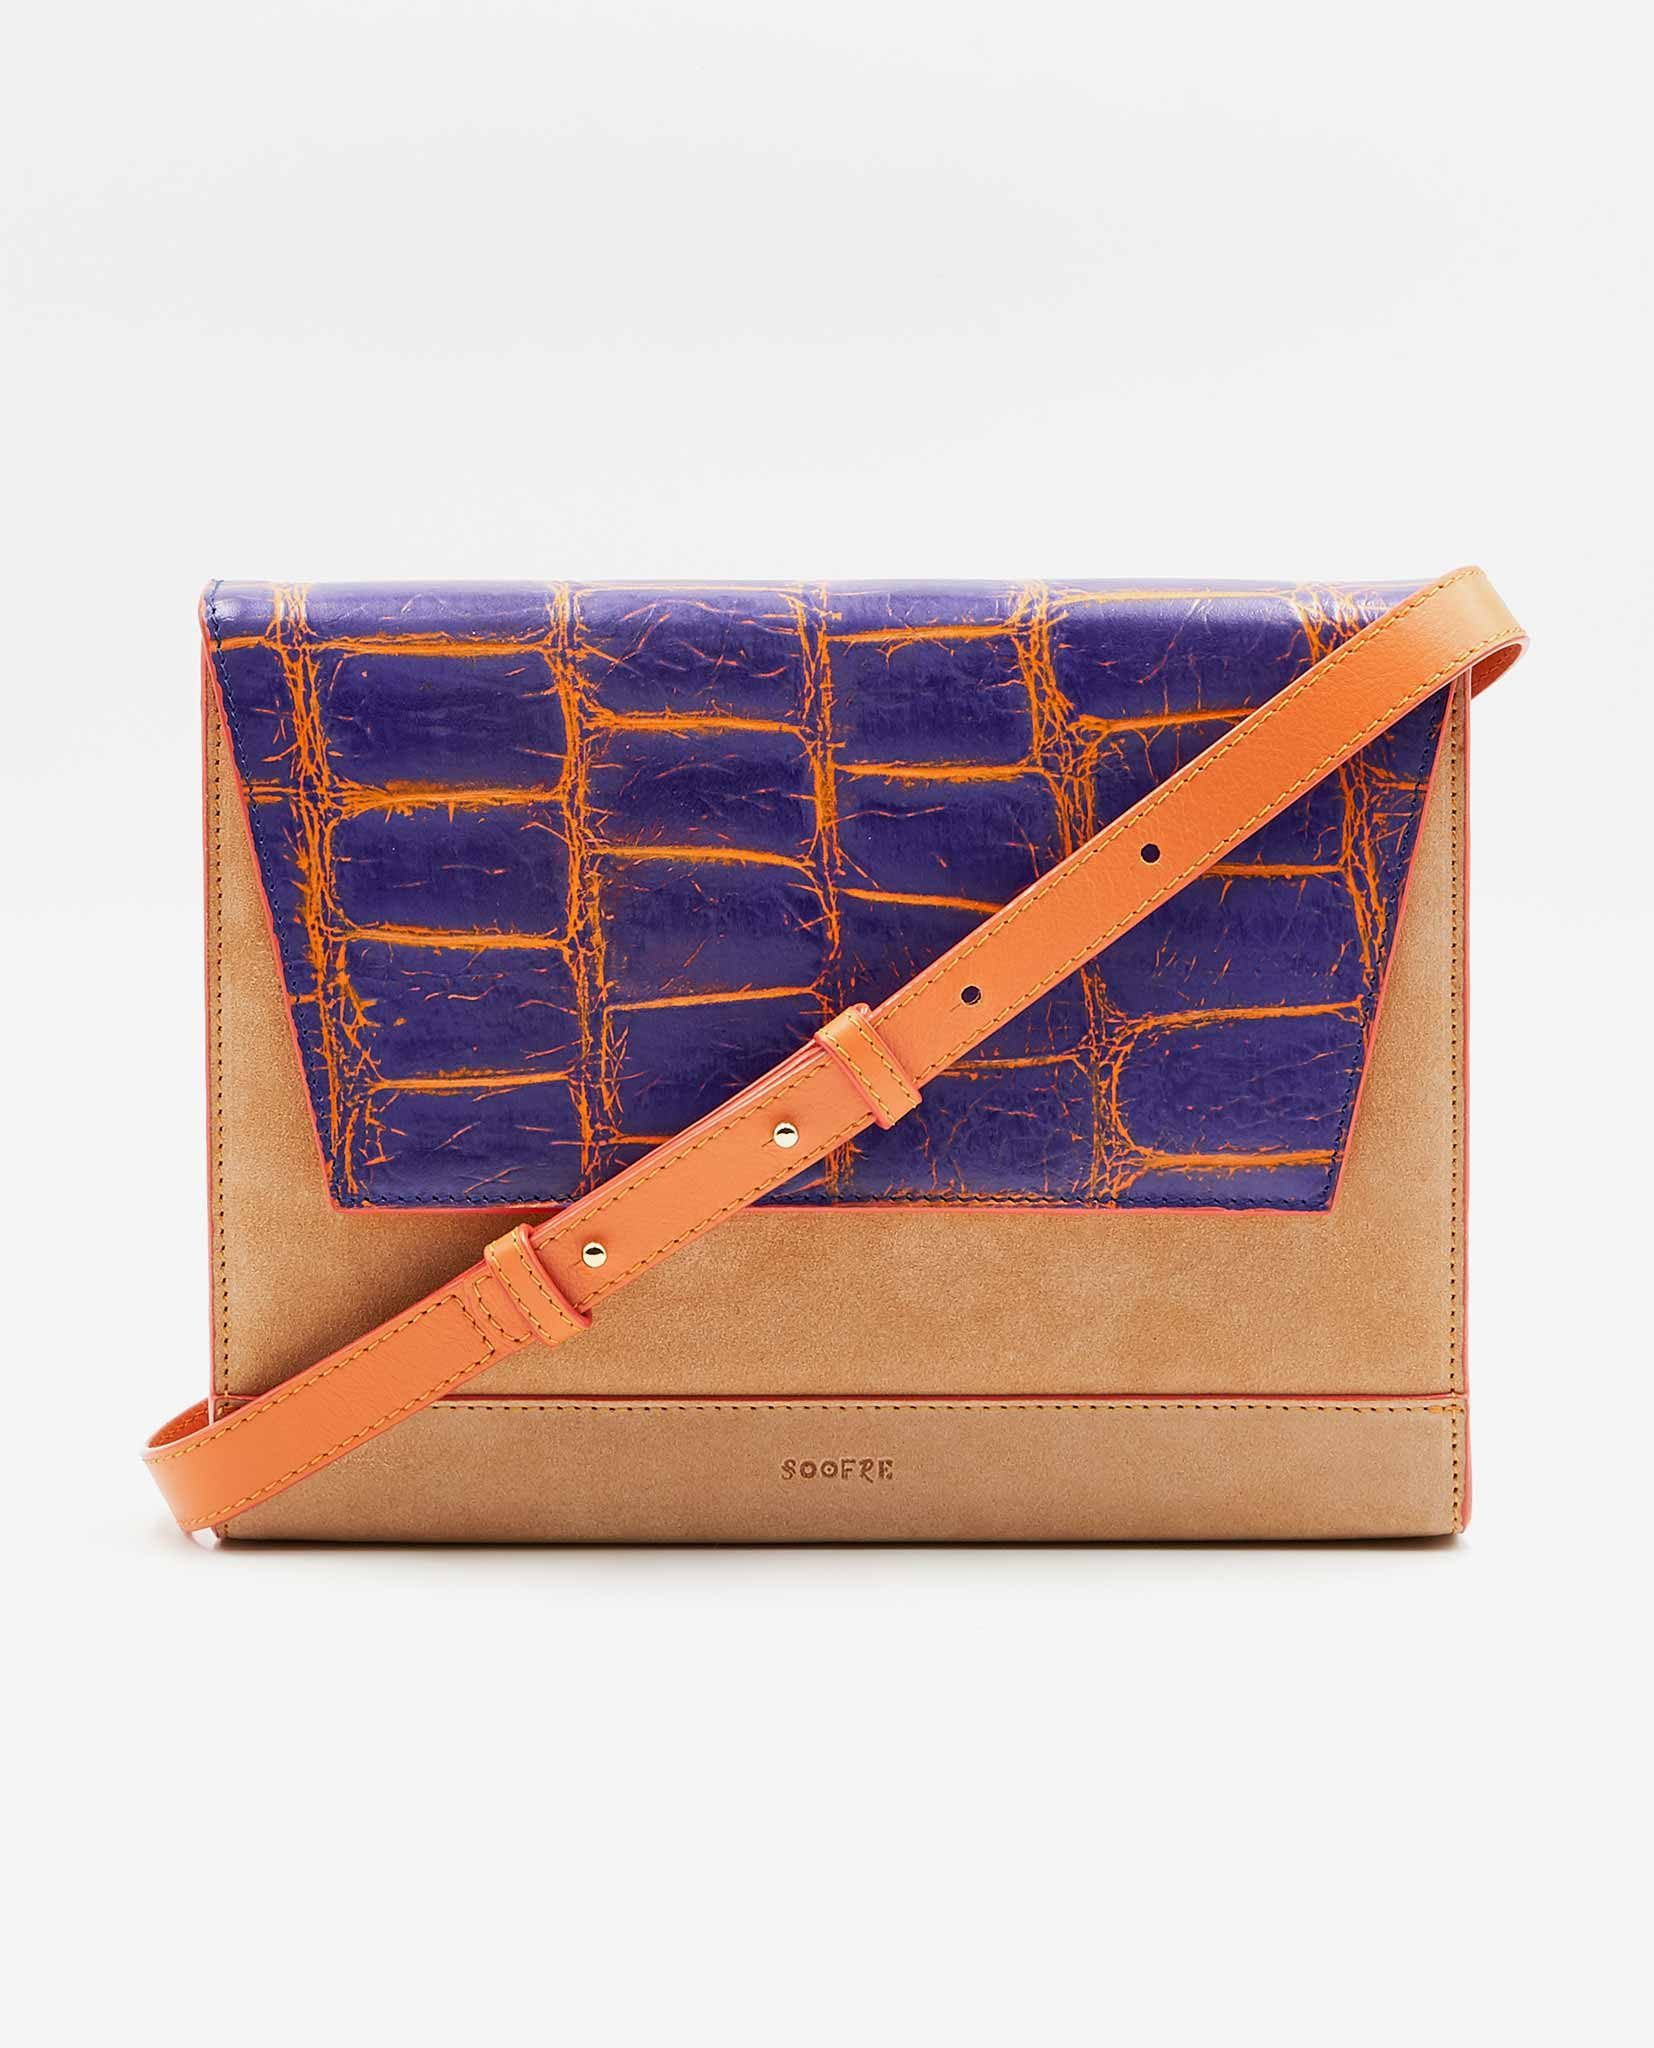 SOOFRE-Berlin-unique-Clutch-croco-purple-orange-apricot-FRONT